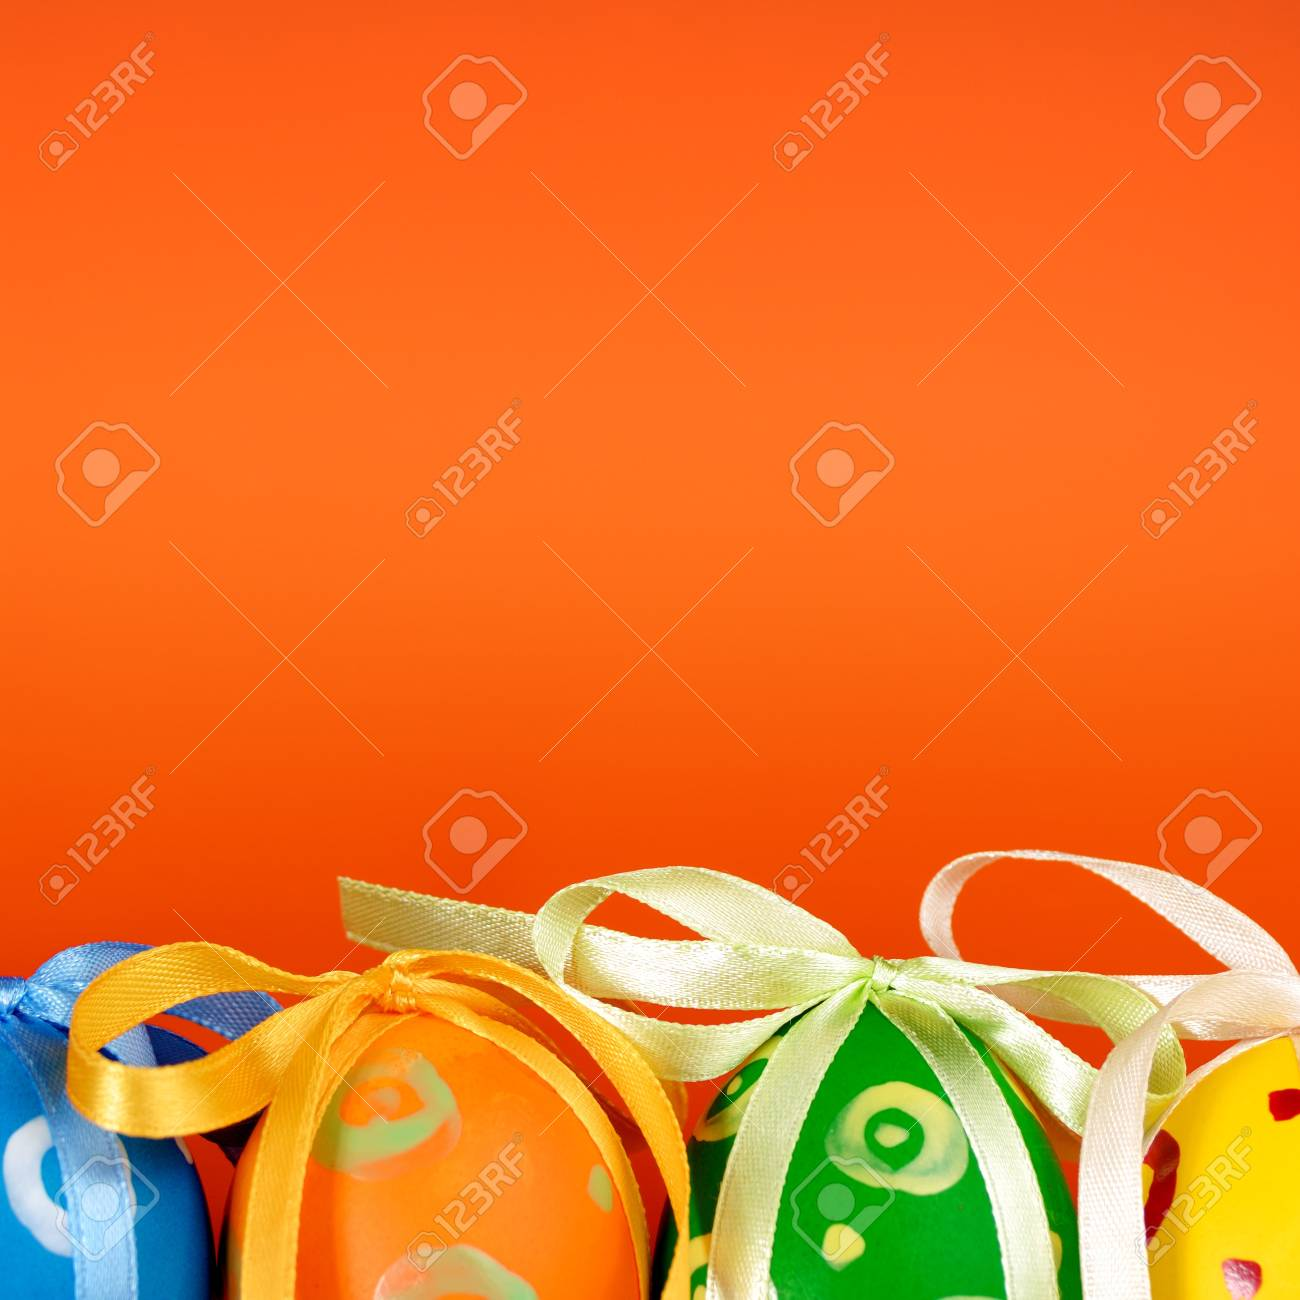 Easter eggs with bows over orange background Stock Photo - 8680878